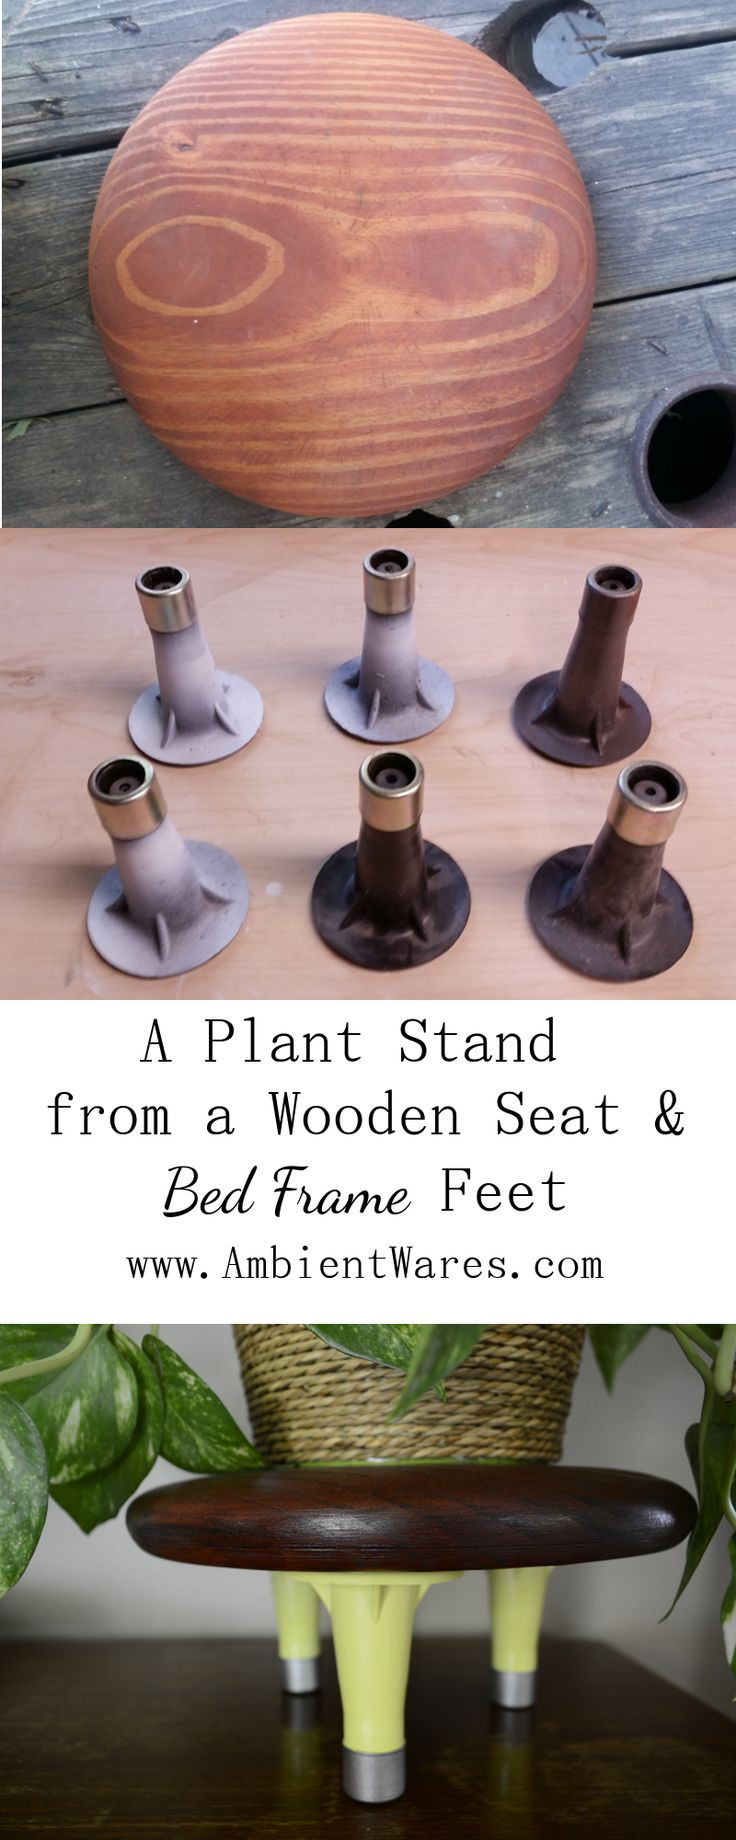 Old bed frame feet have a little bit of a mid-century vibe goin' on, don't they? These were added to a wooden seat to make a plant stand! For this and more unique project ideas, visit AmbientWares.com #diyplantstand #midcenturyplantstant